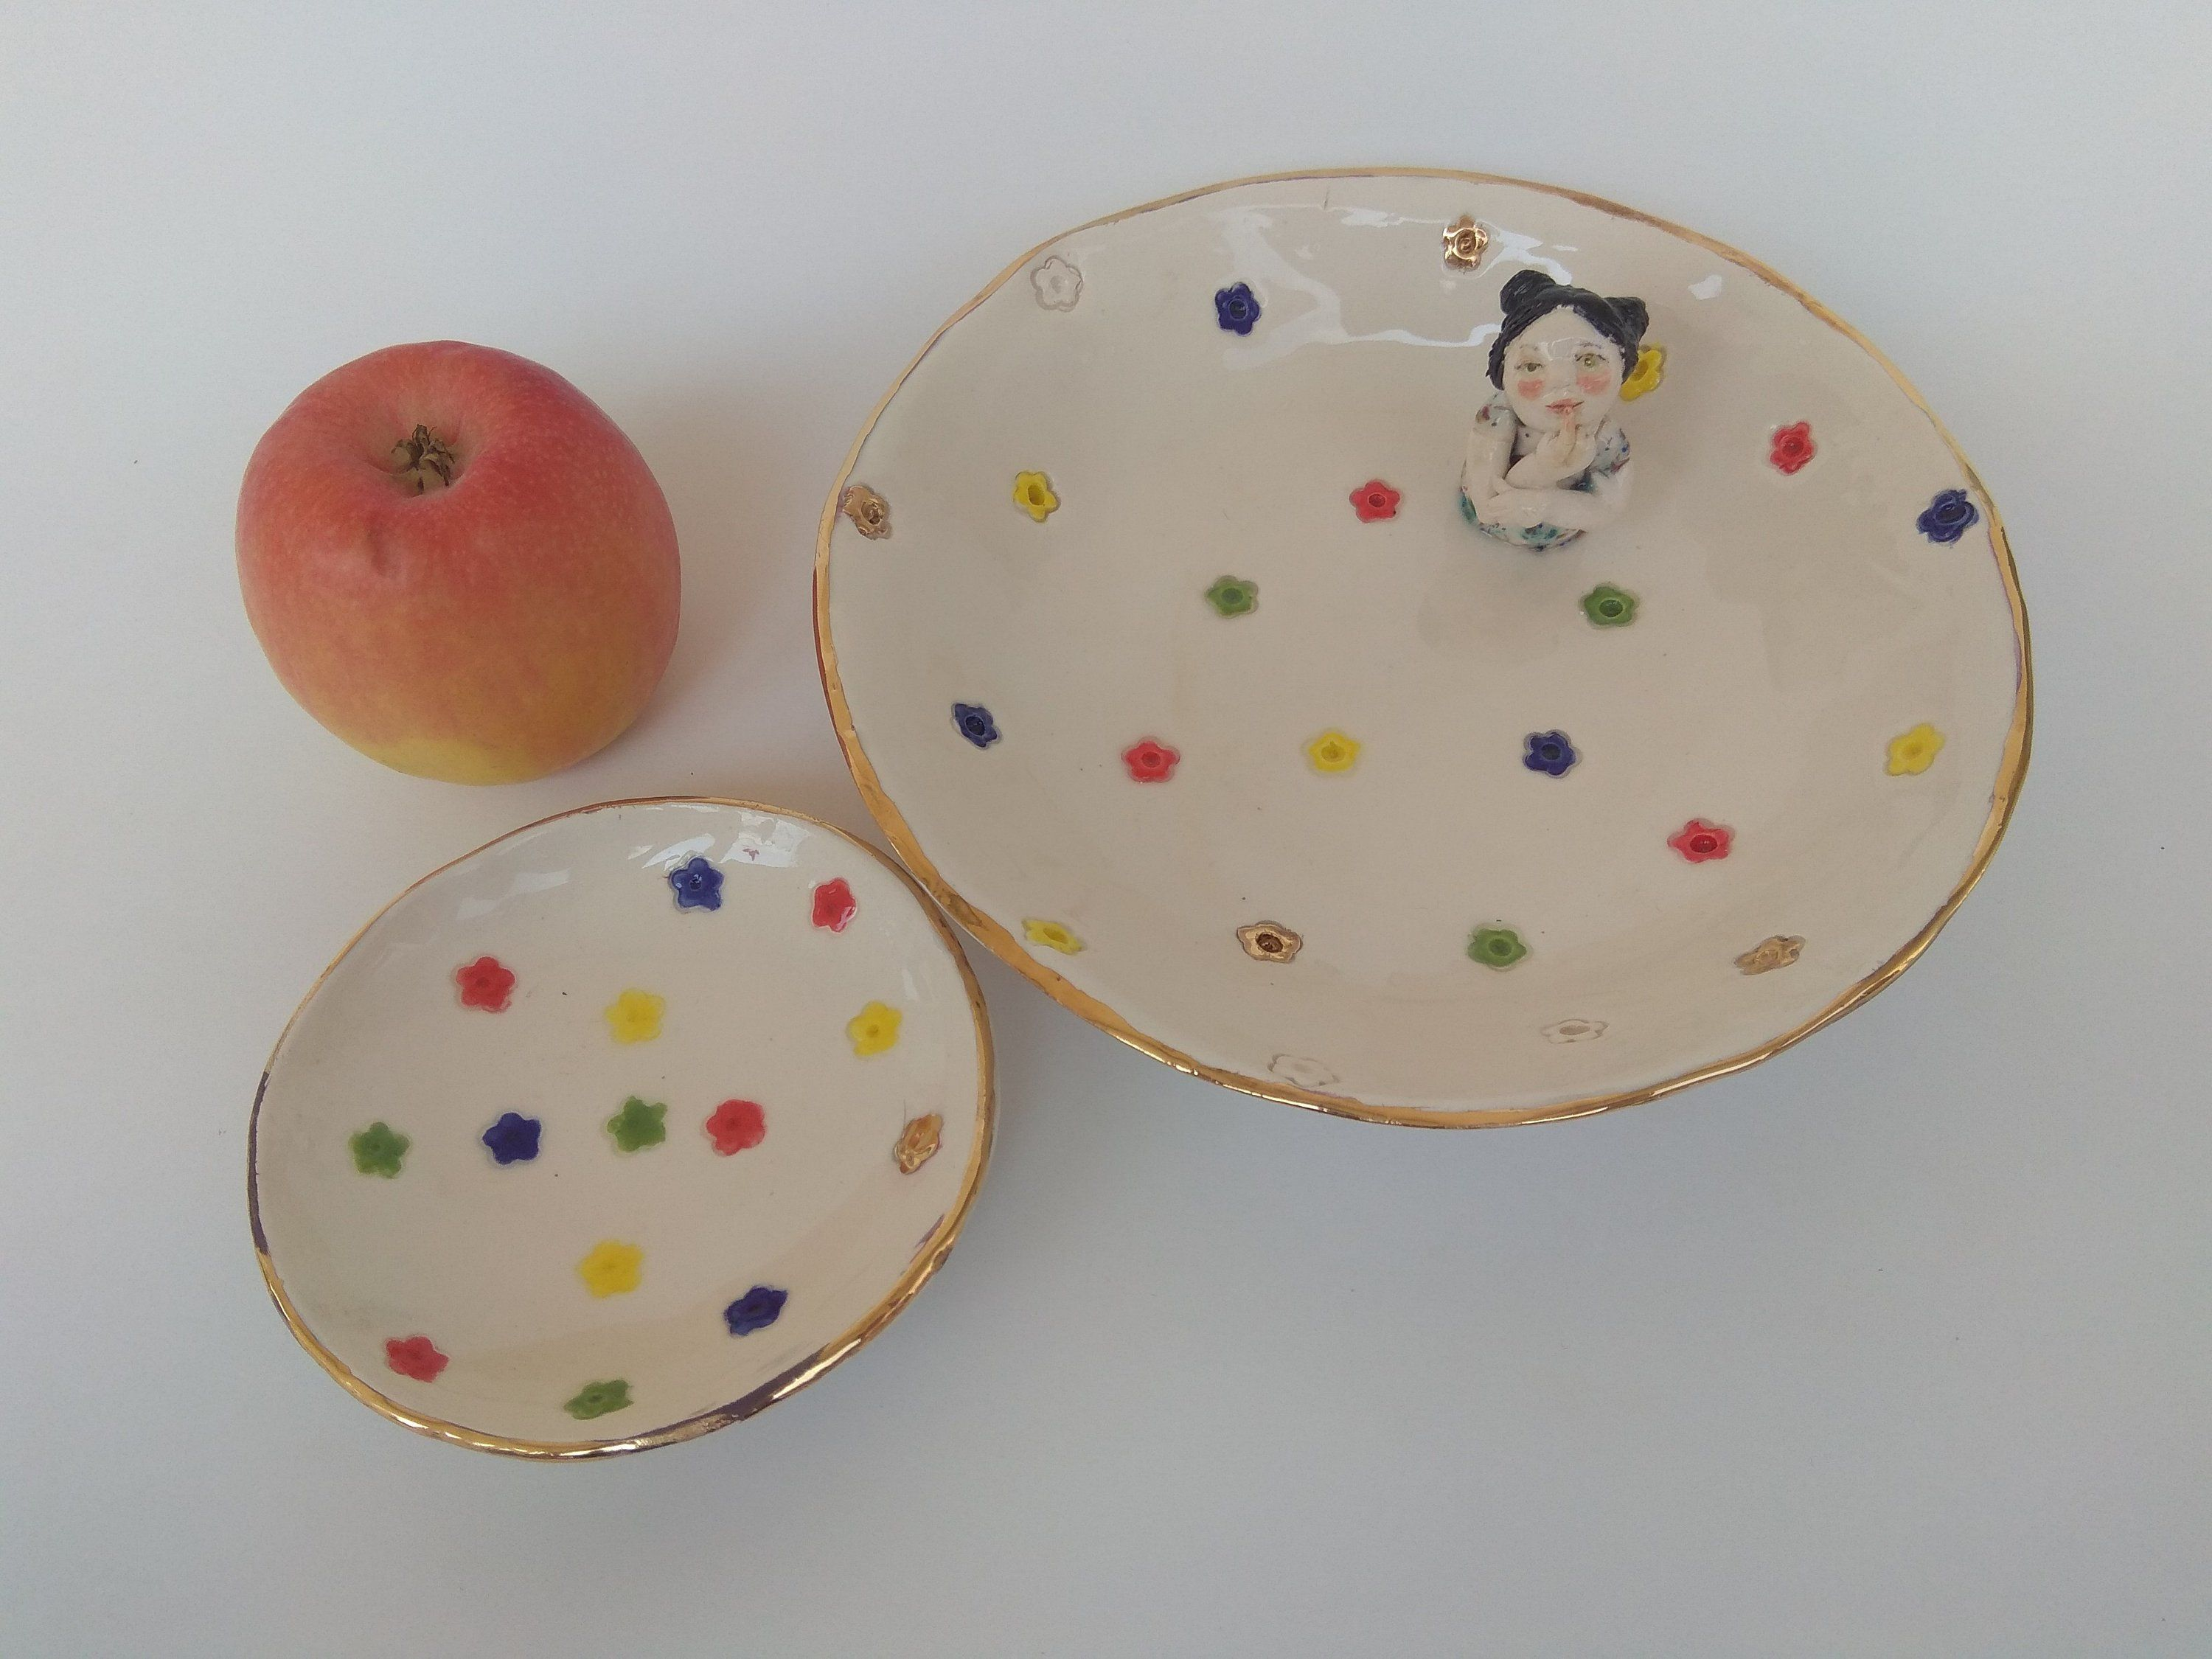 Ceramic Plate Made In Israel Pottery Tray Platter Artisan Home and Table Decor Rosh Hashana Serving Dish with Apple and Pomegranate Decorations Handmade of Clay